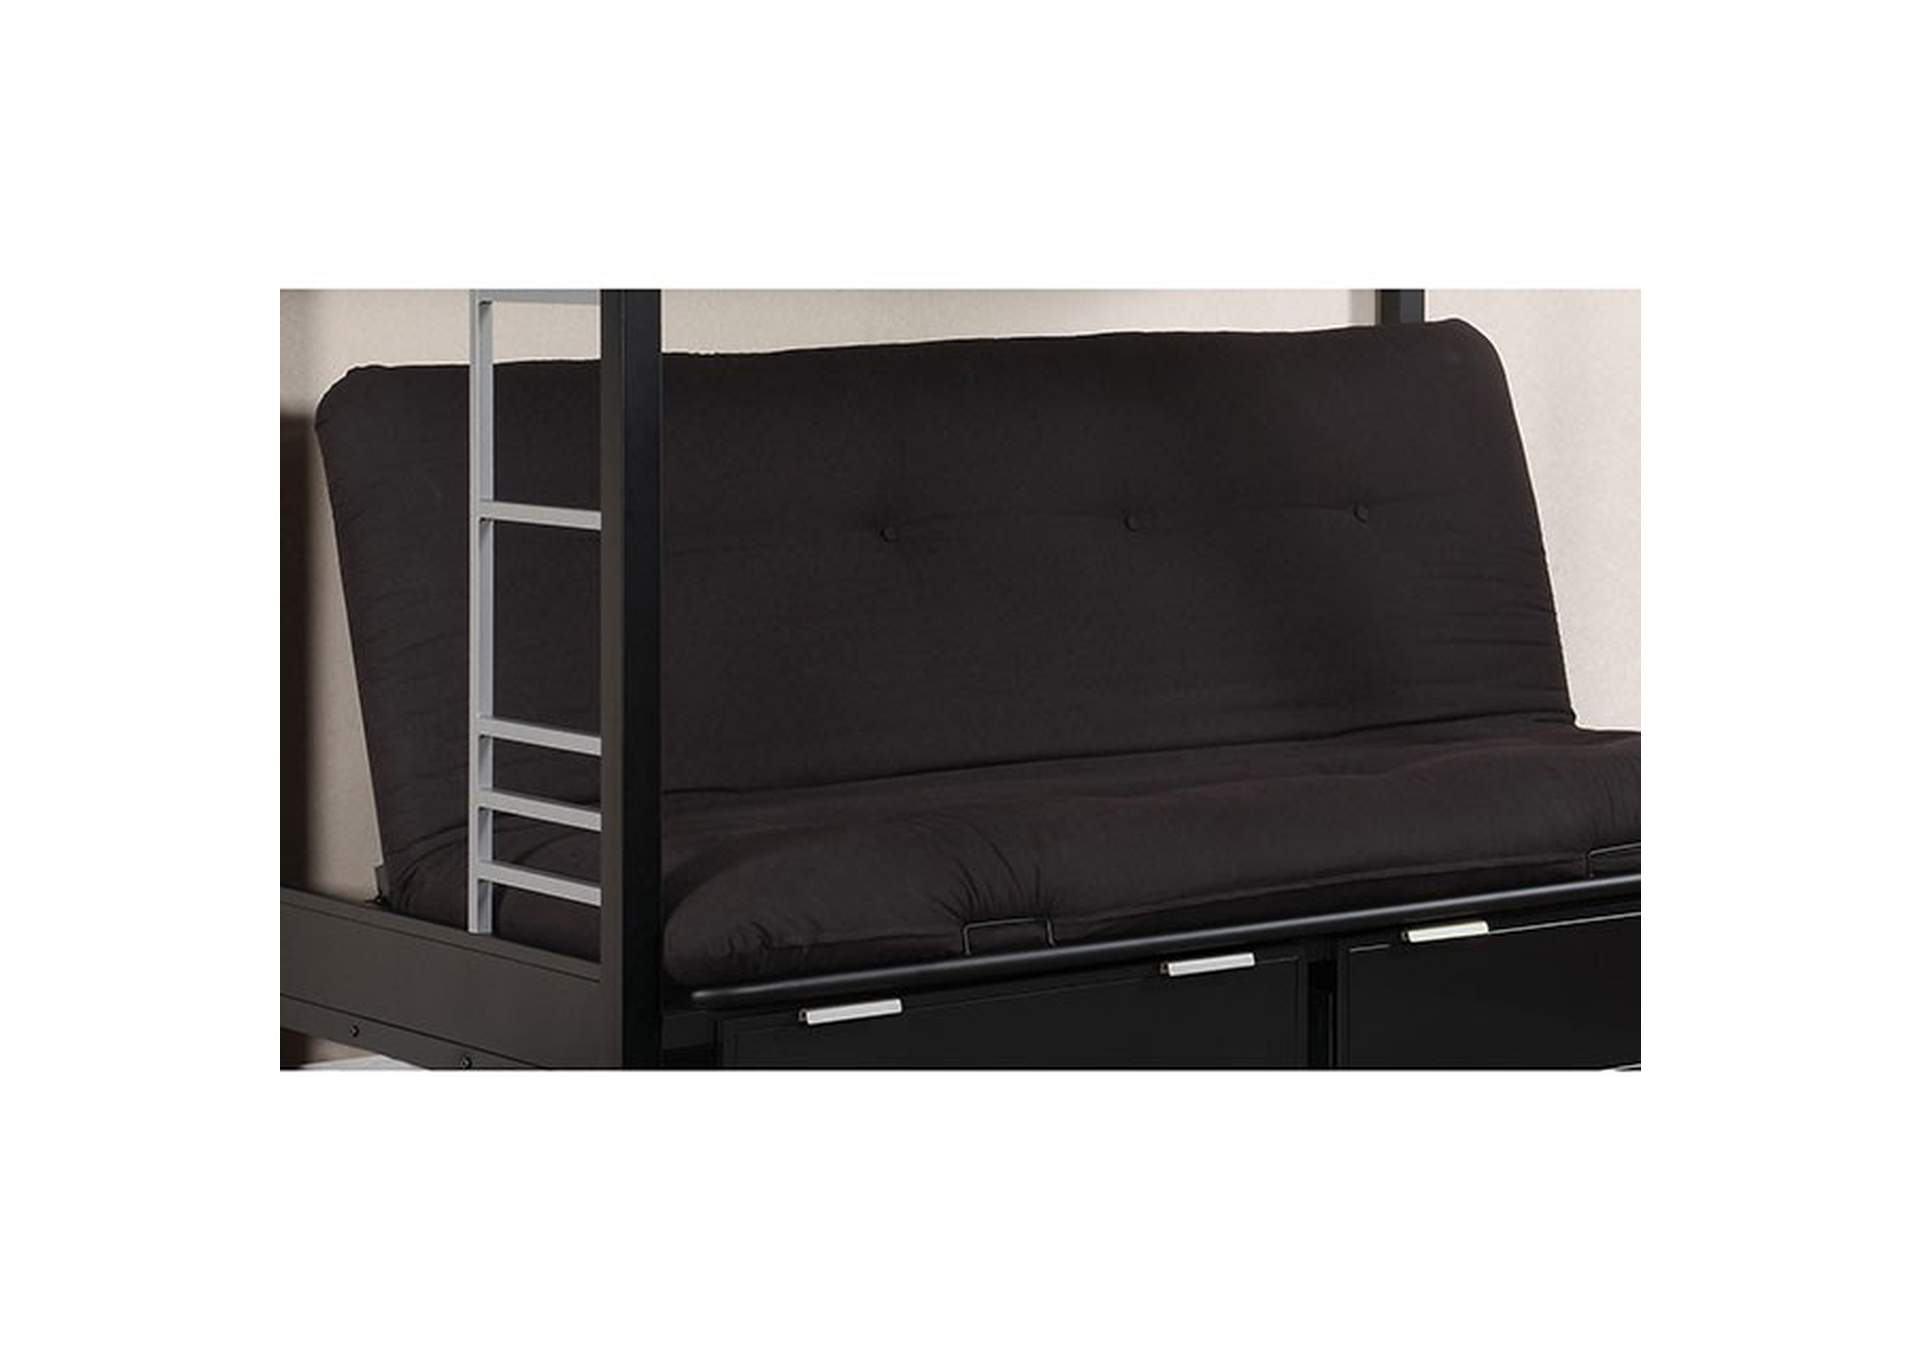 "Plosh 6"" Black Futon Mattress,Furniture of America"